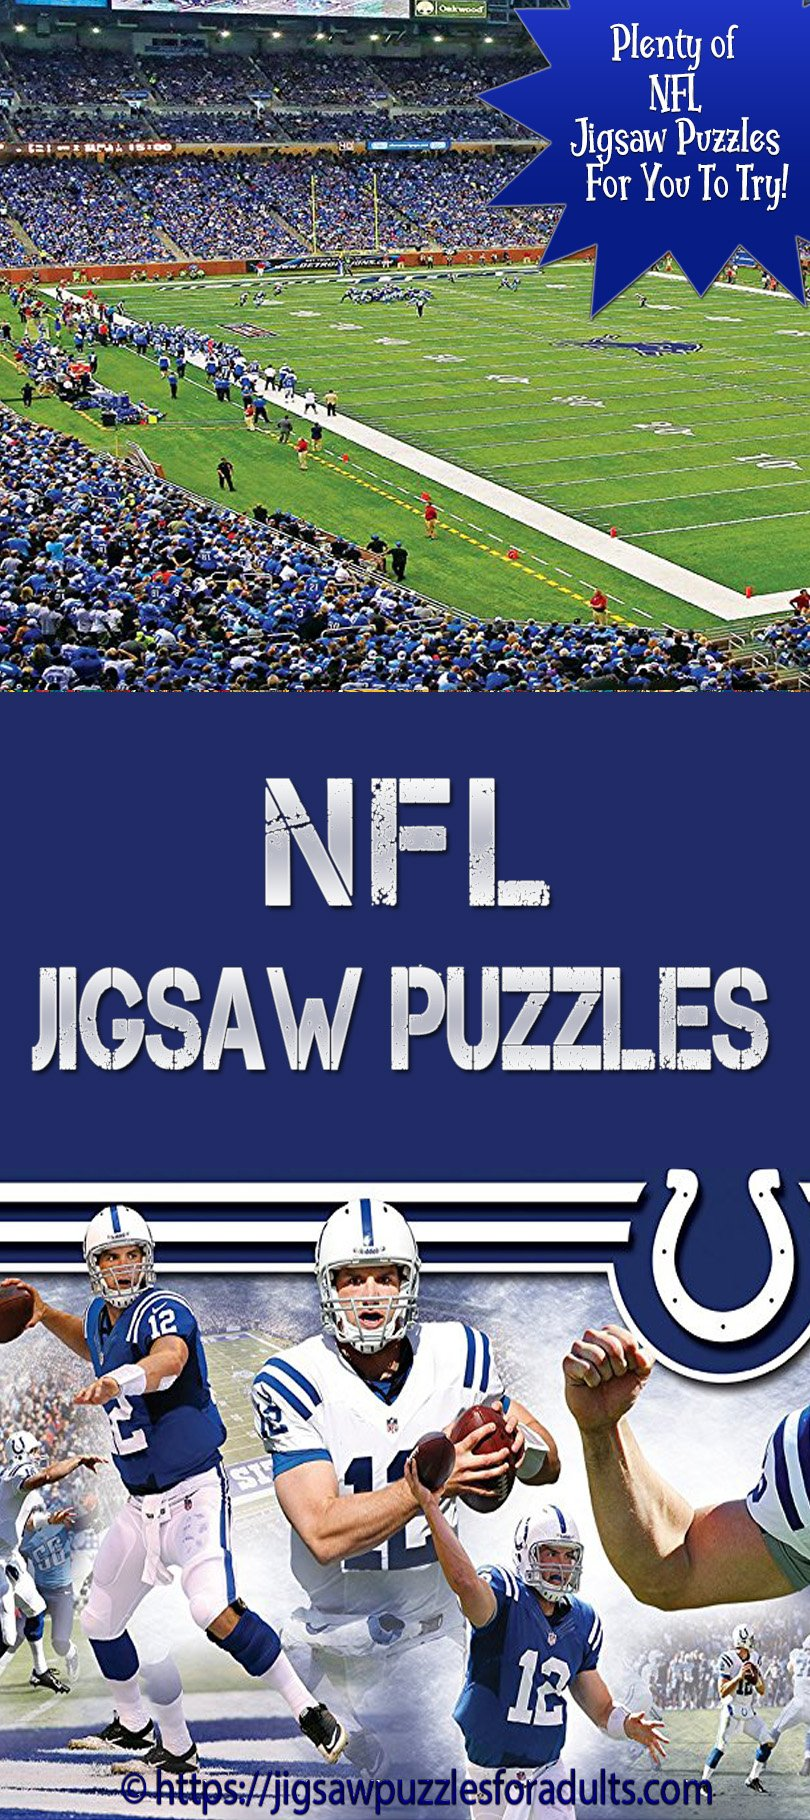 NFL Jigsaw Puzzles